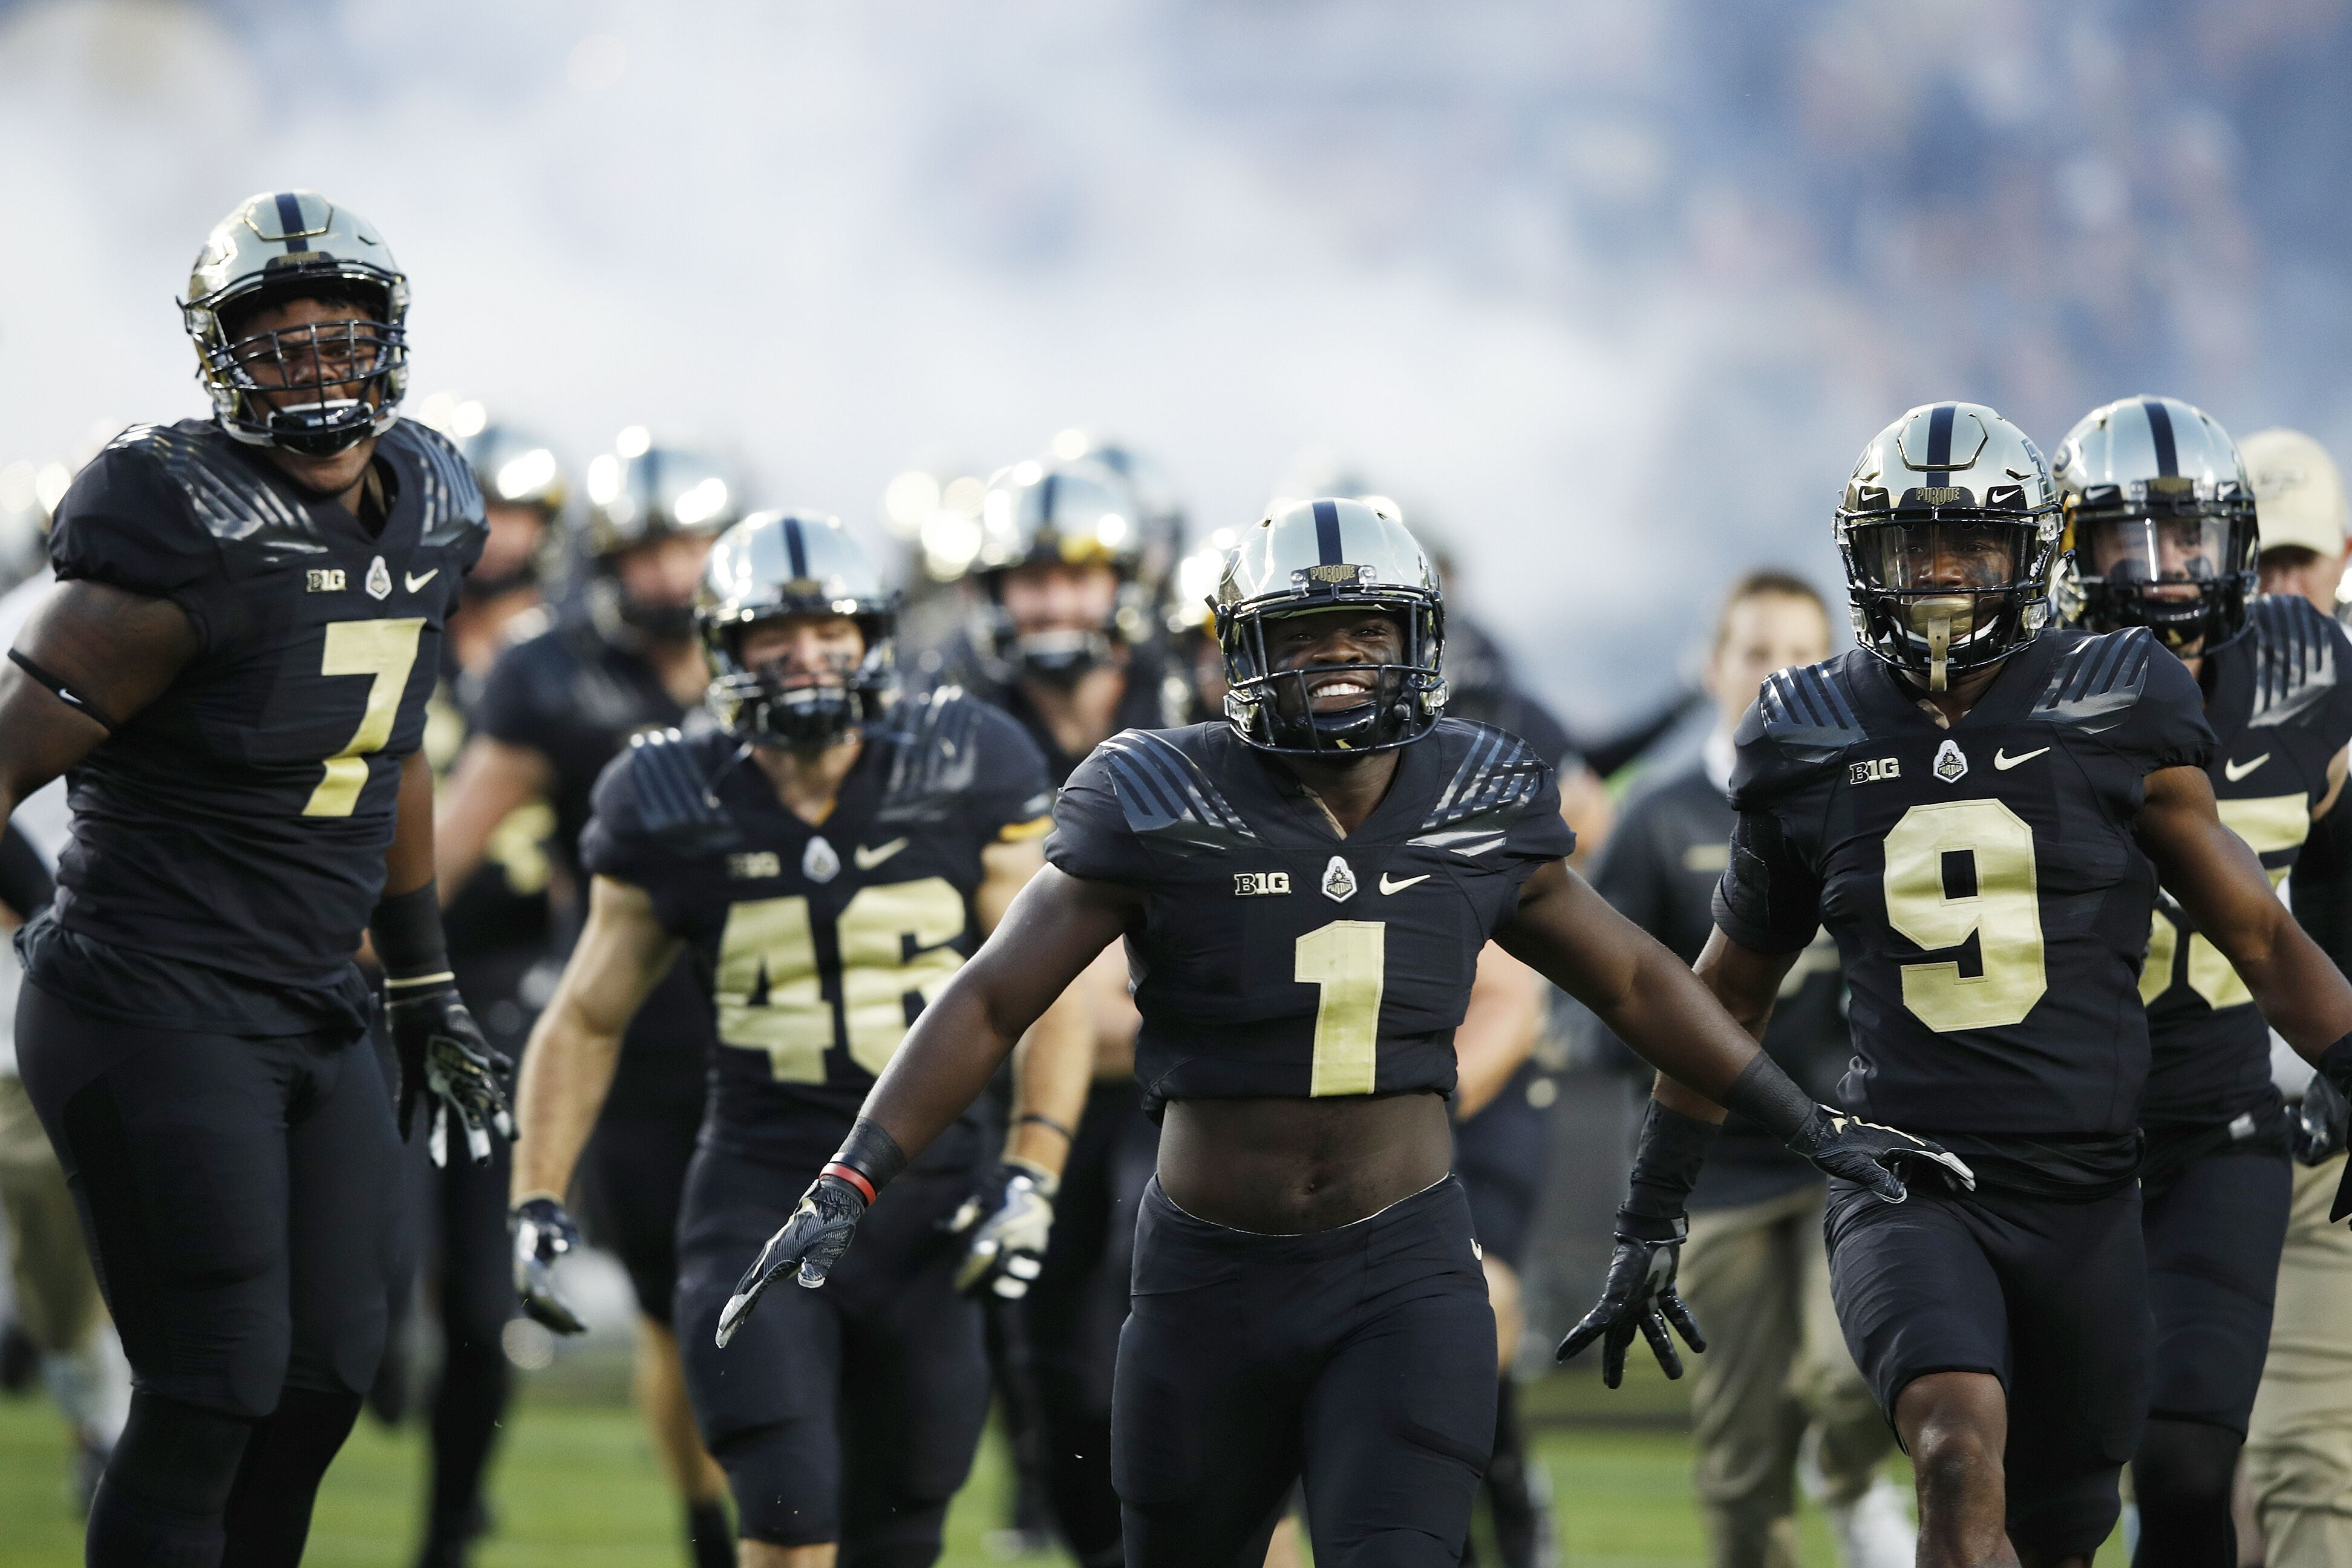 Purdue has replaced Kentucky football as the hottest team in the Midwestern recruiting scene